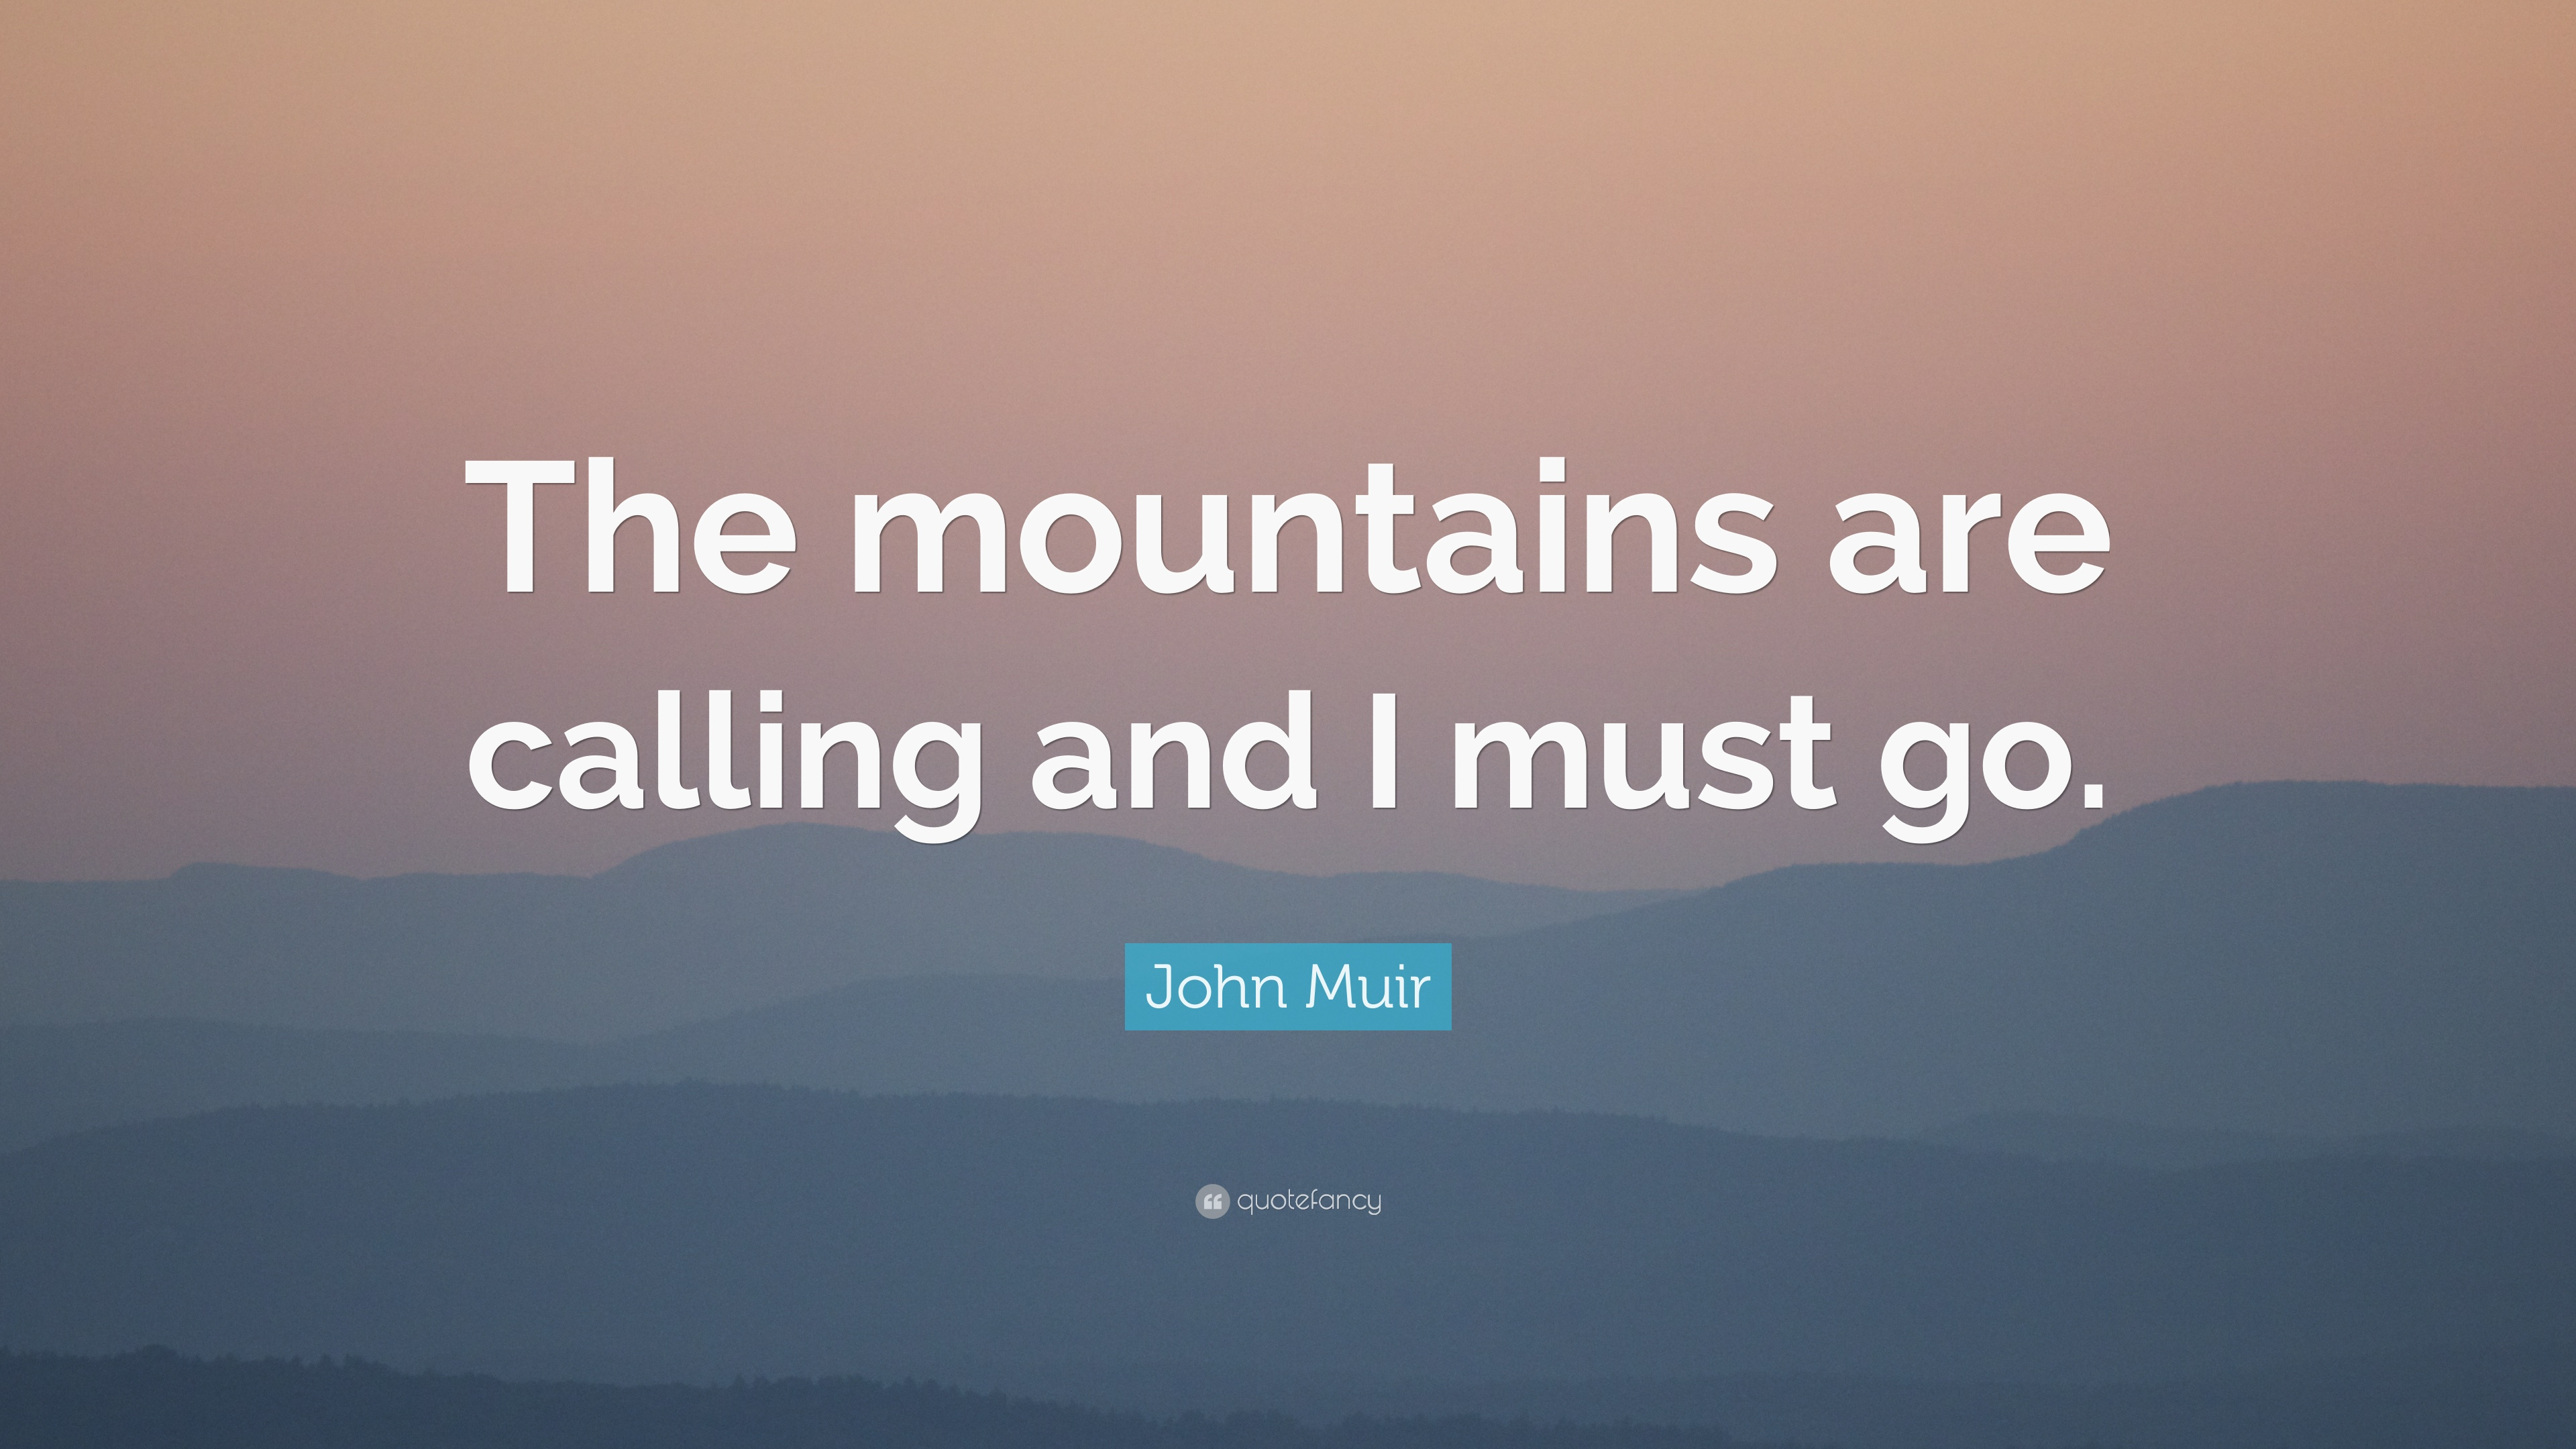 The Mountains Are Calling And I Must Go John Muir Poem Akrossfo